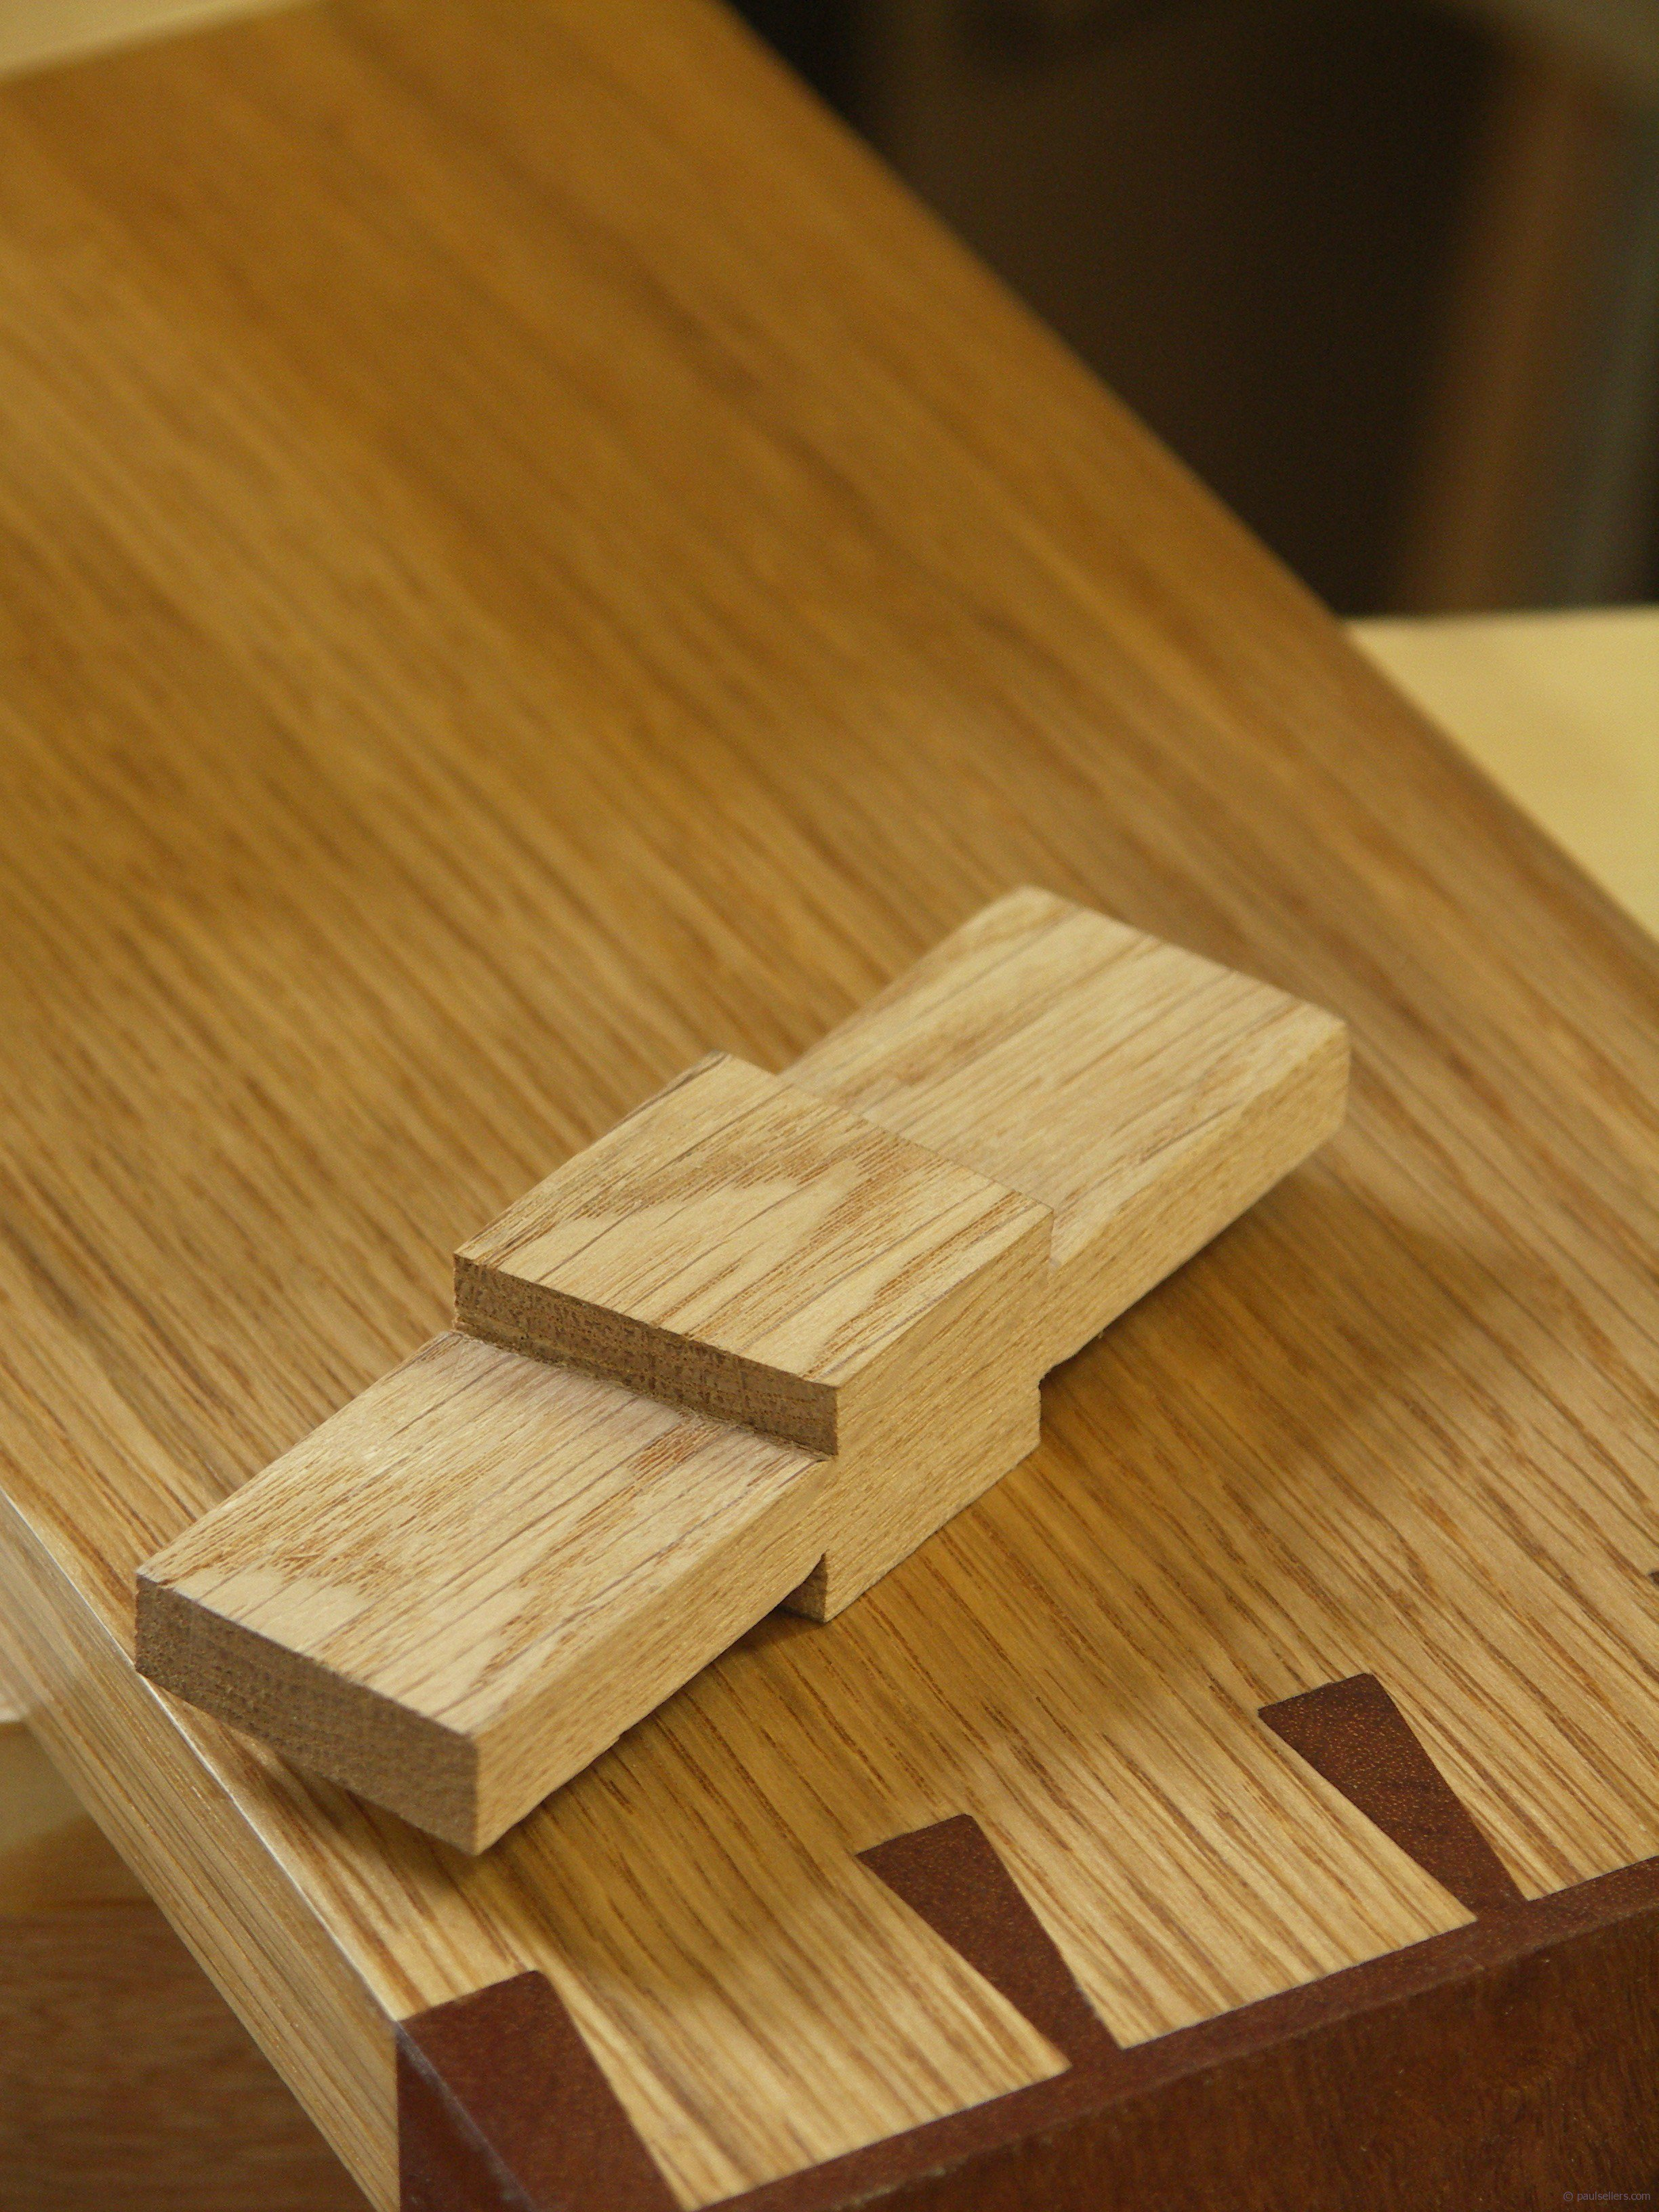 Dovetail joint template